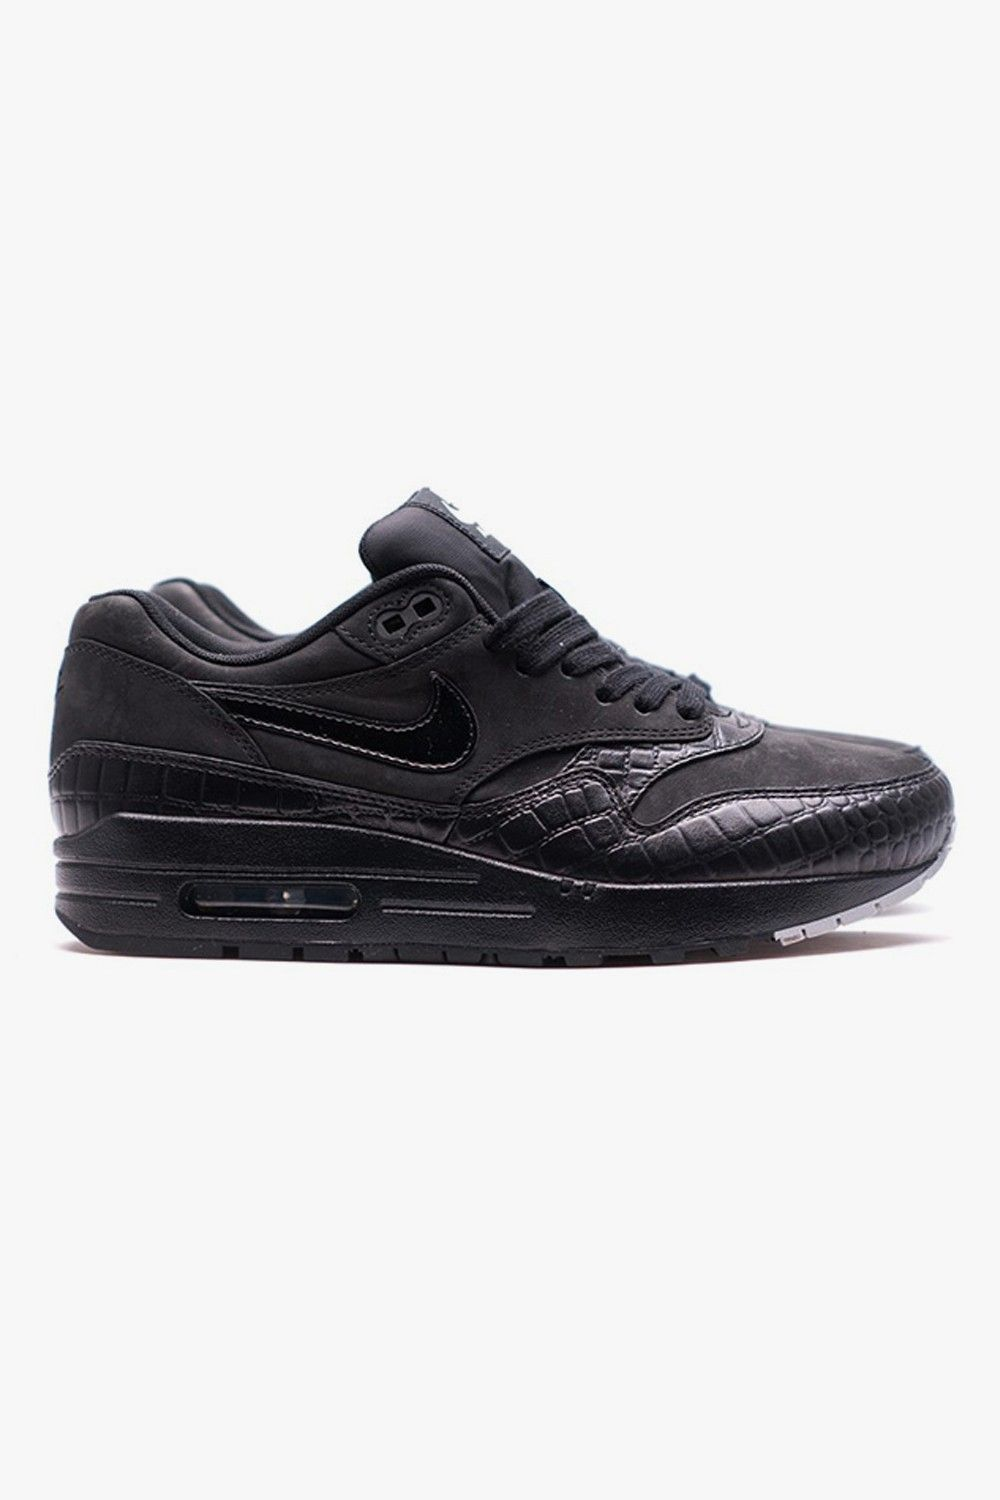 nike air max 1 premium ladies nz